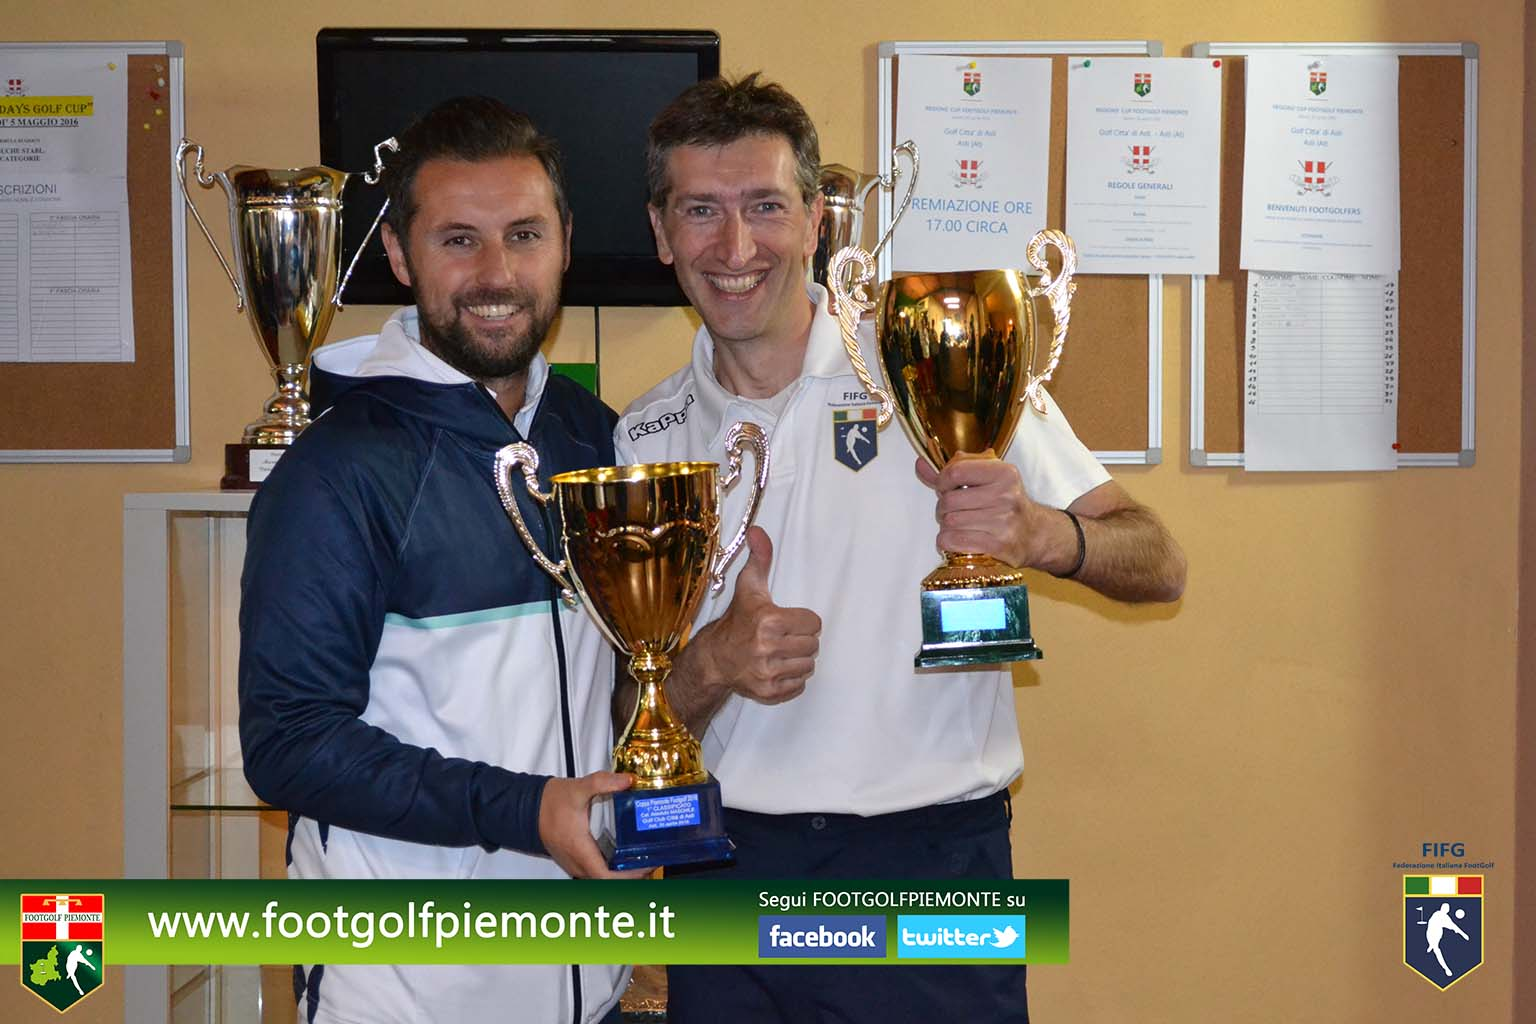 FOTO 9 Regions' Cup Footgolf Piemonte 2016 Golf Città di Asti (At) 30apr16-140